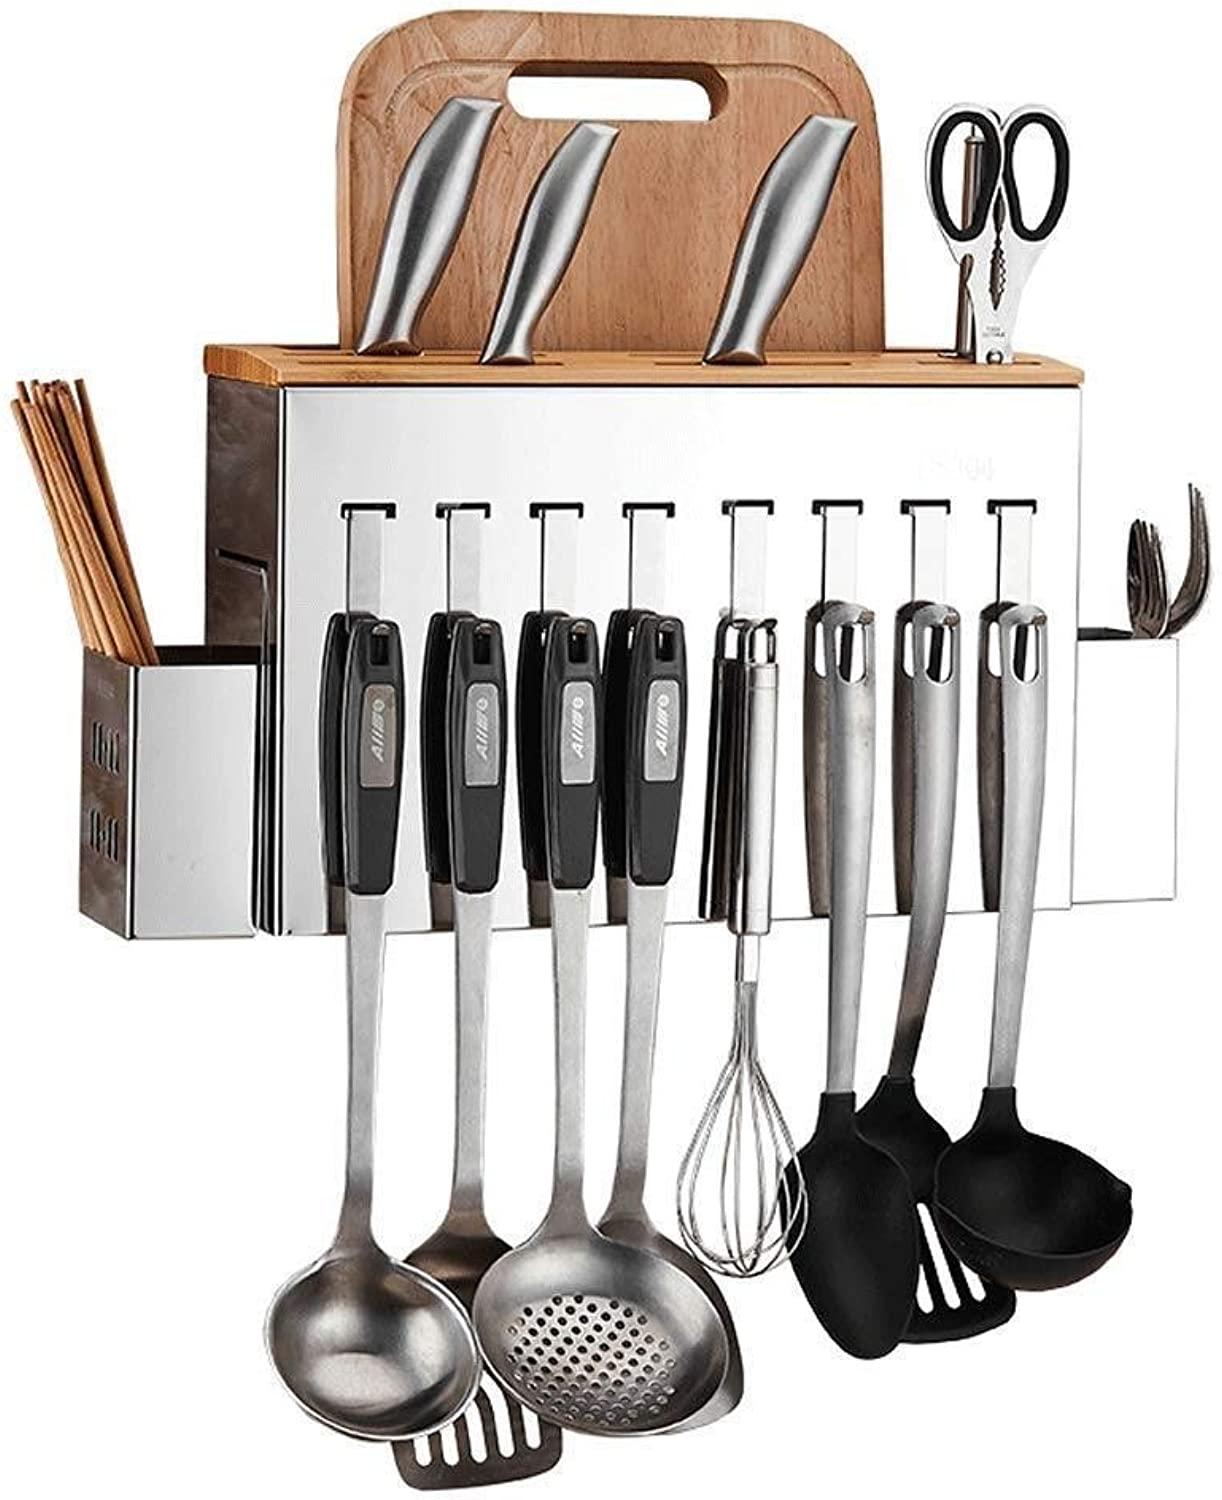 Organizer Rack Knife Holder- 304 Stainless Steel Punch-Free Kitchen Rack Wall-Mounted Tool Case Chopping Board Kitchen Knife Storage Supplies Knife Holder ZXMDMZ